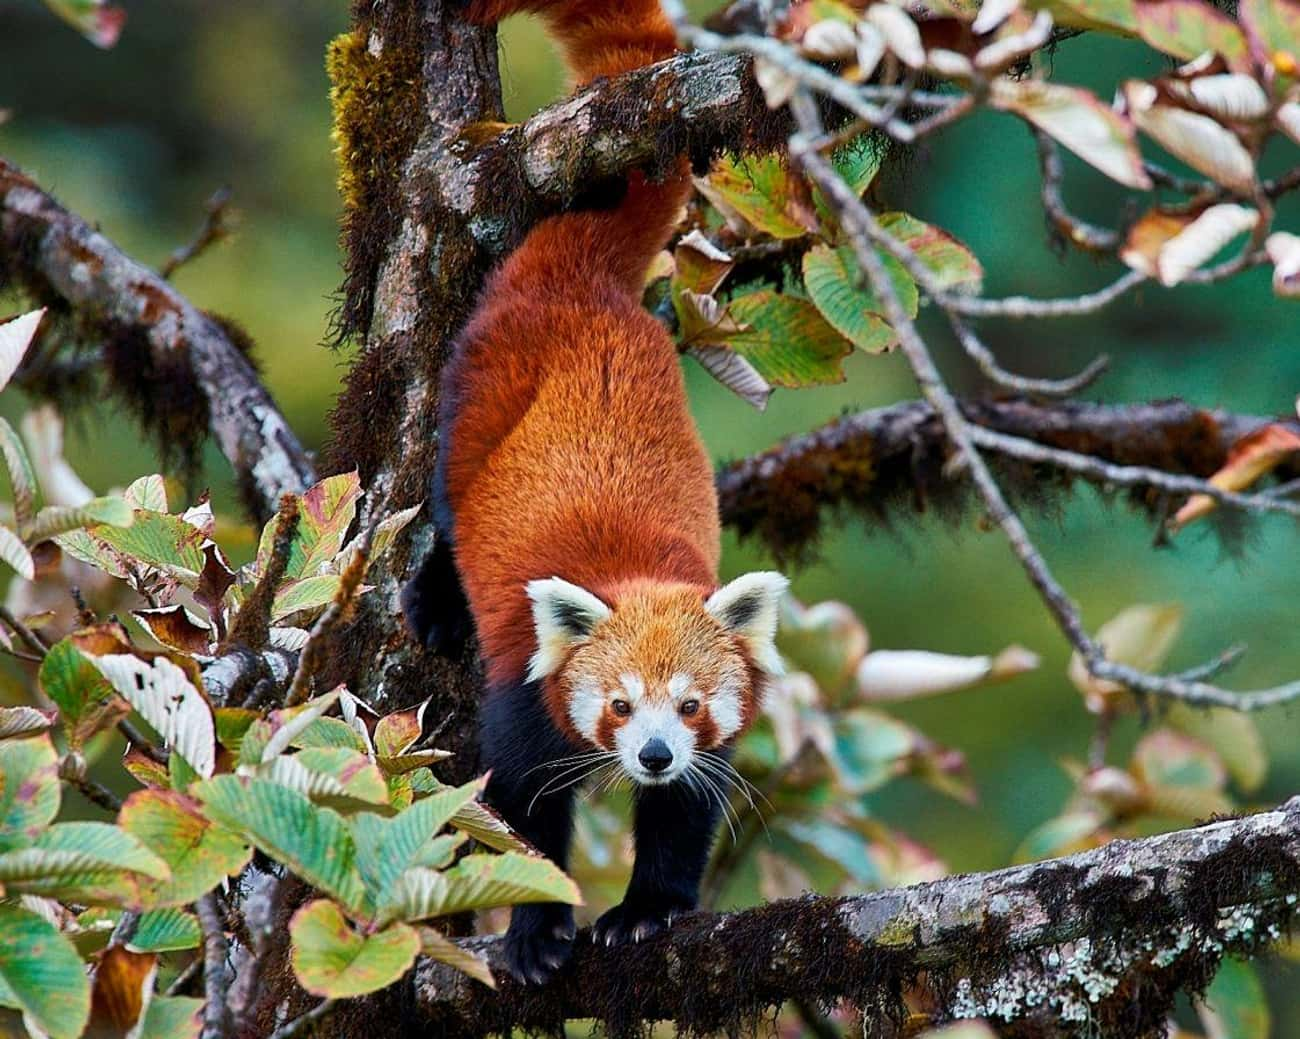 Red Panda is listed (or ranked) 3 on the list The World's Most Beautiful Animals